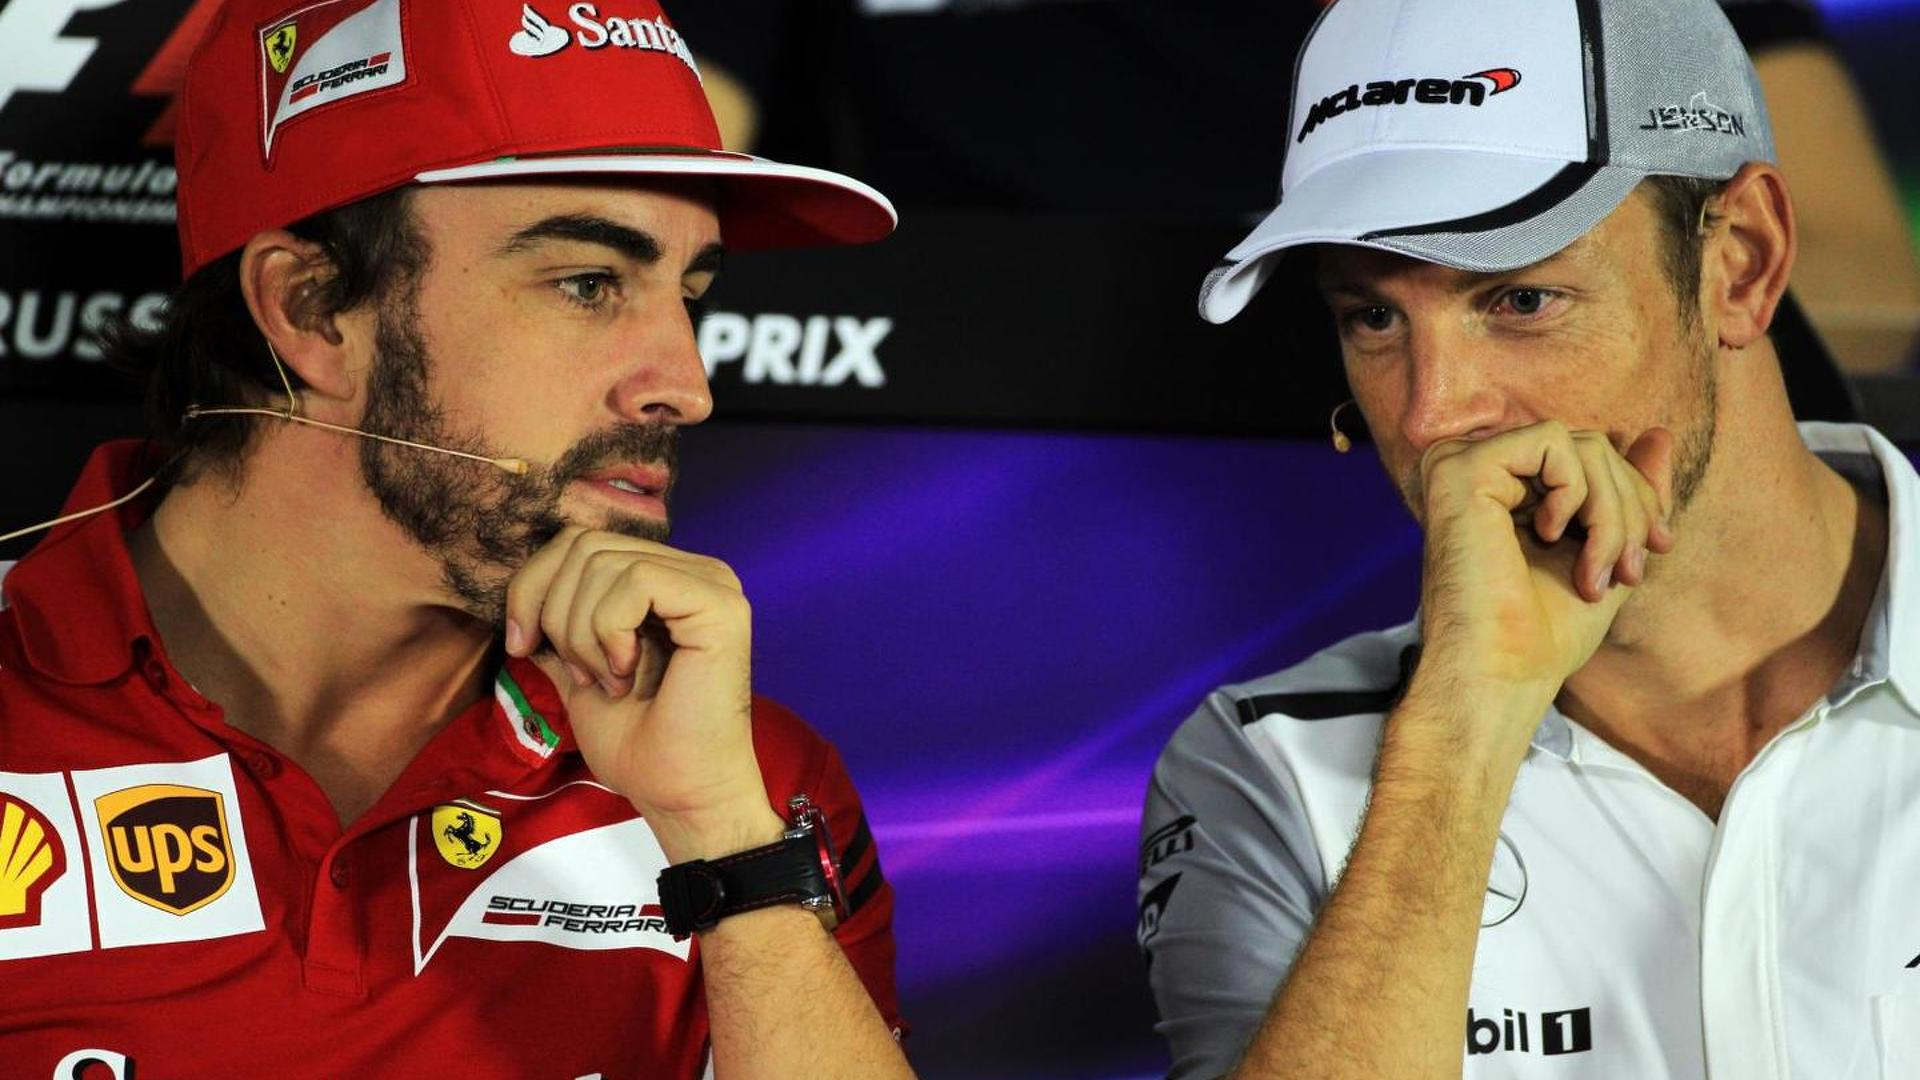 Coulthard, team insider criticise McLaren dithering